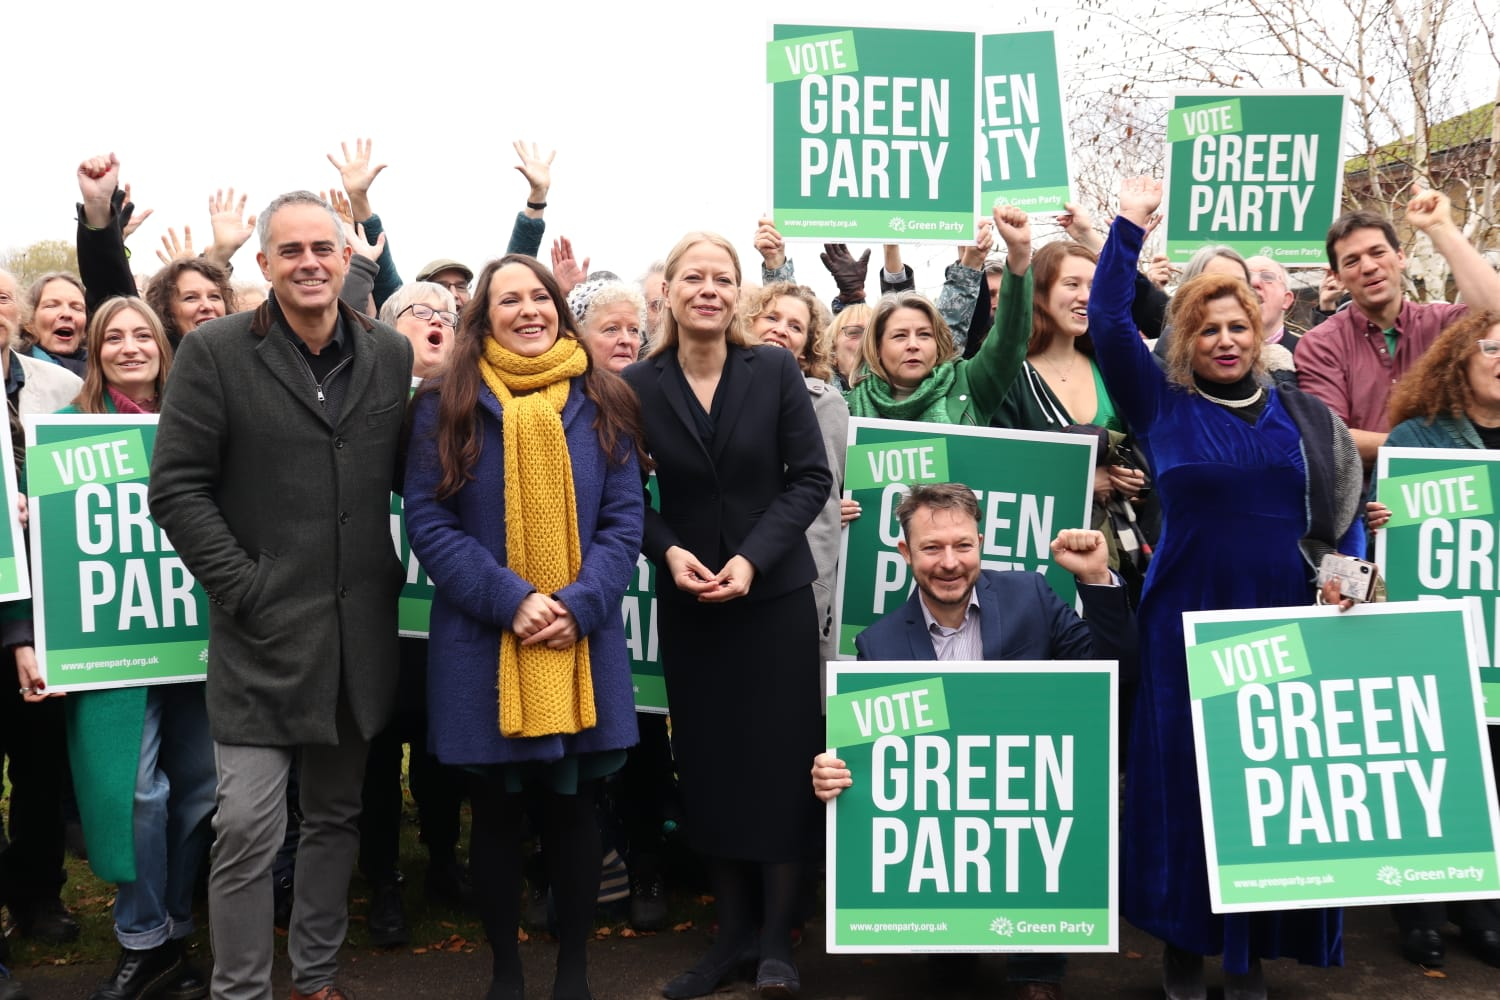 Image: Green Party.